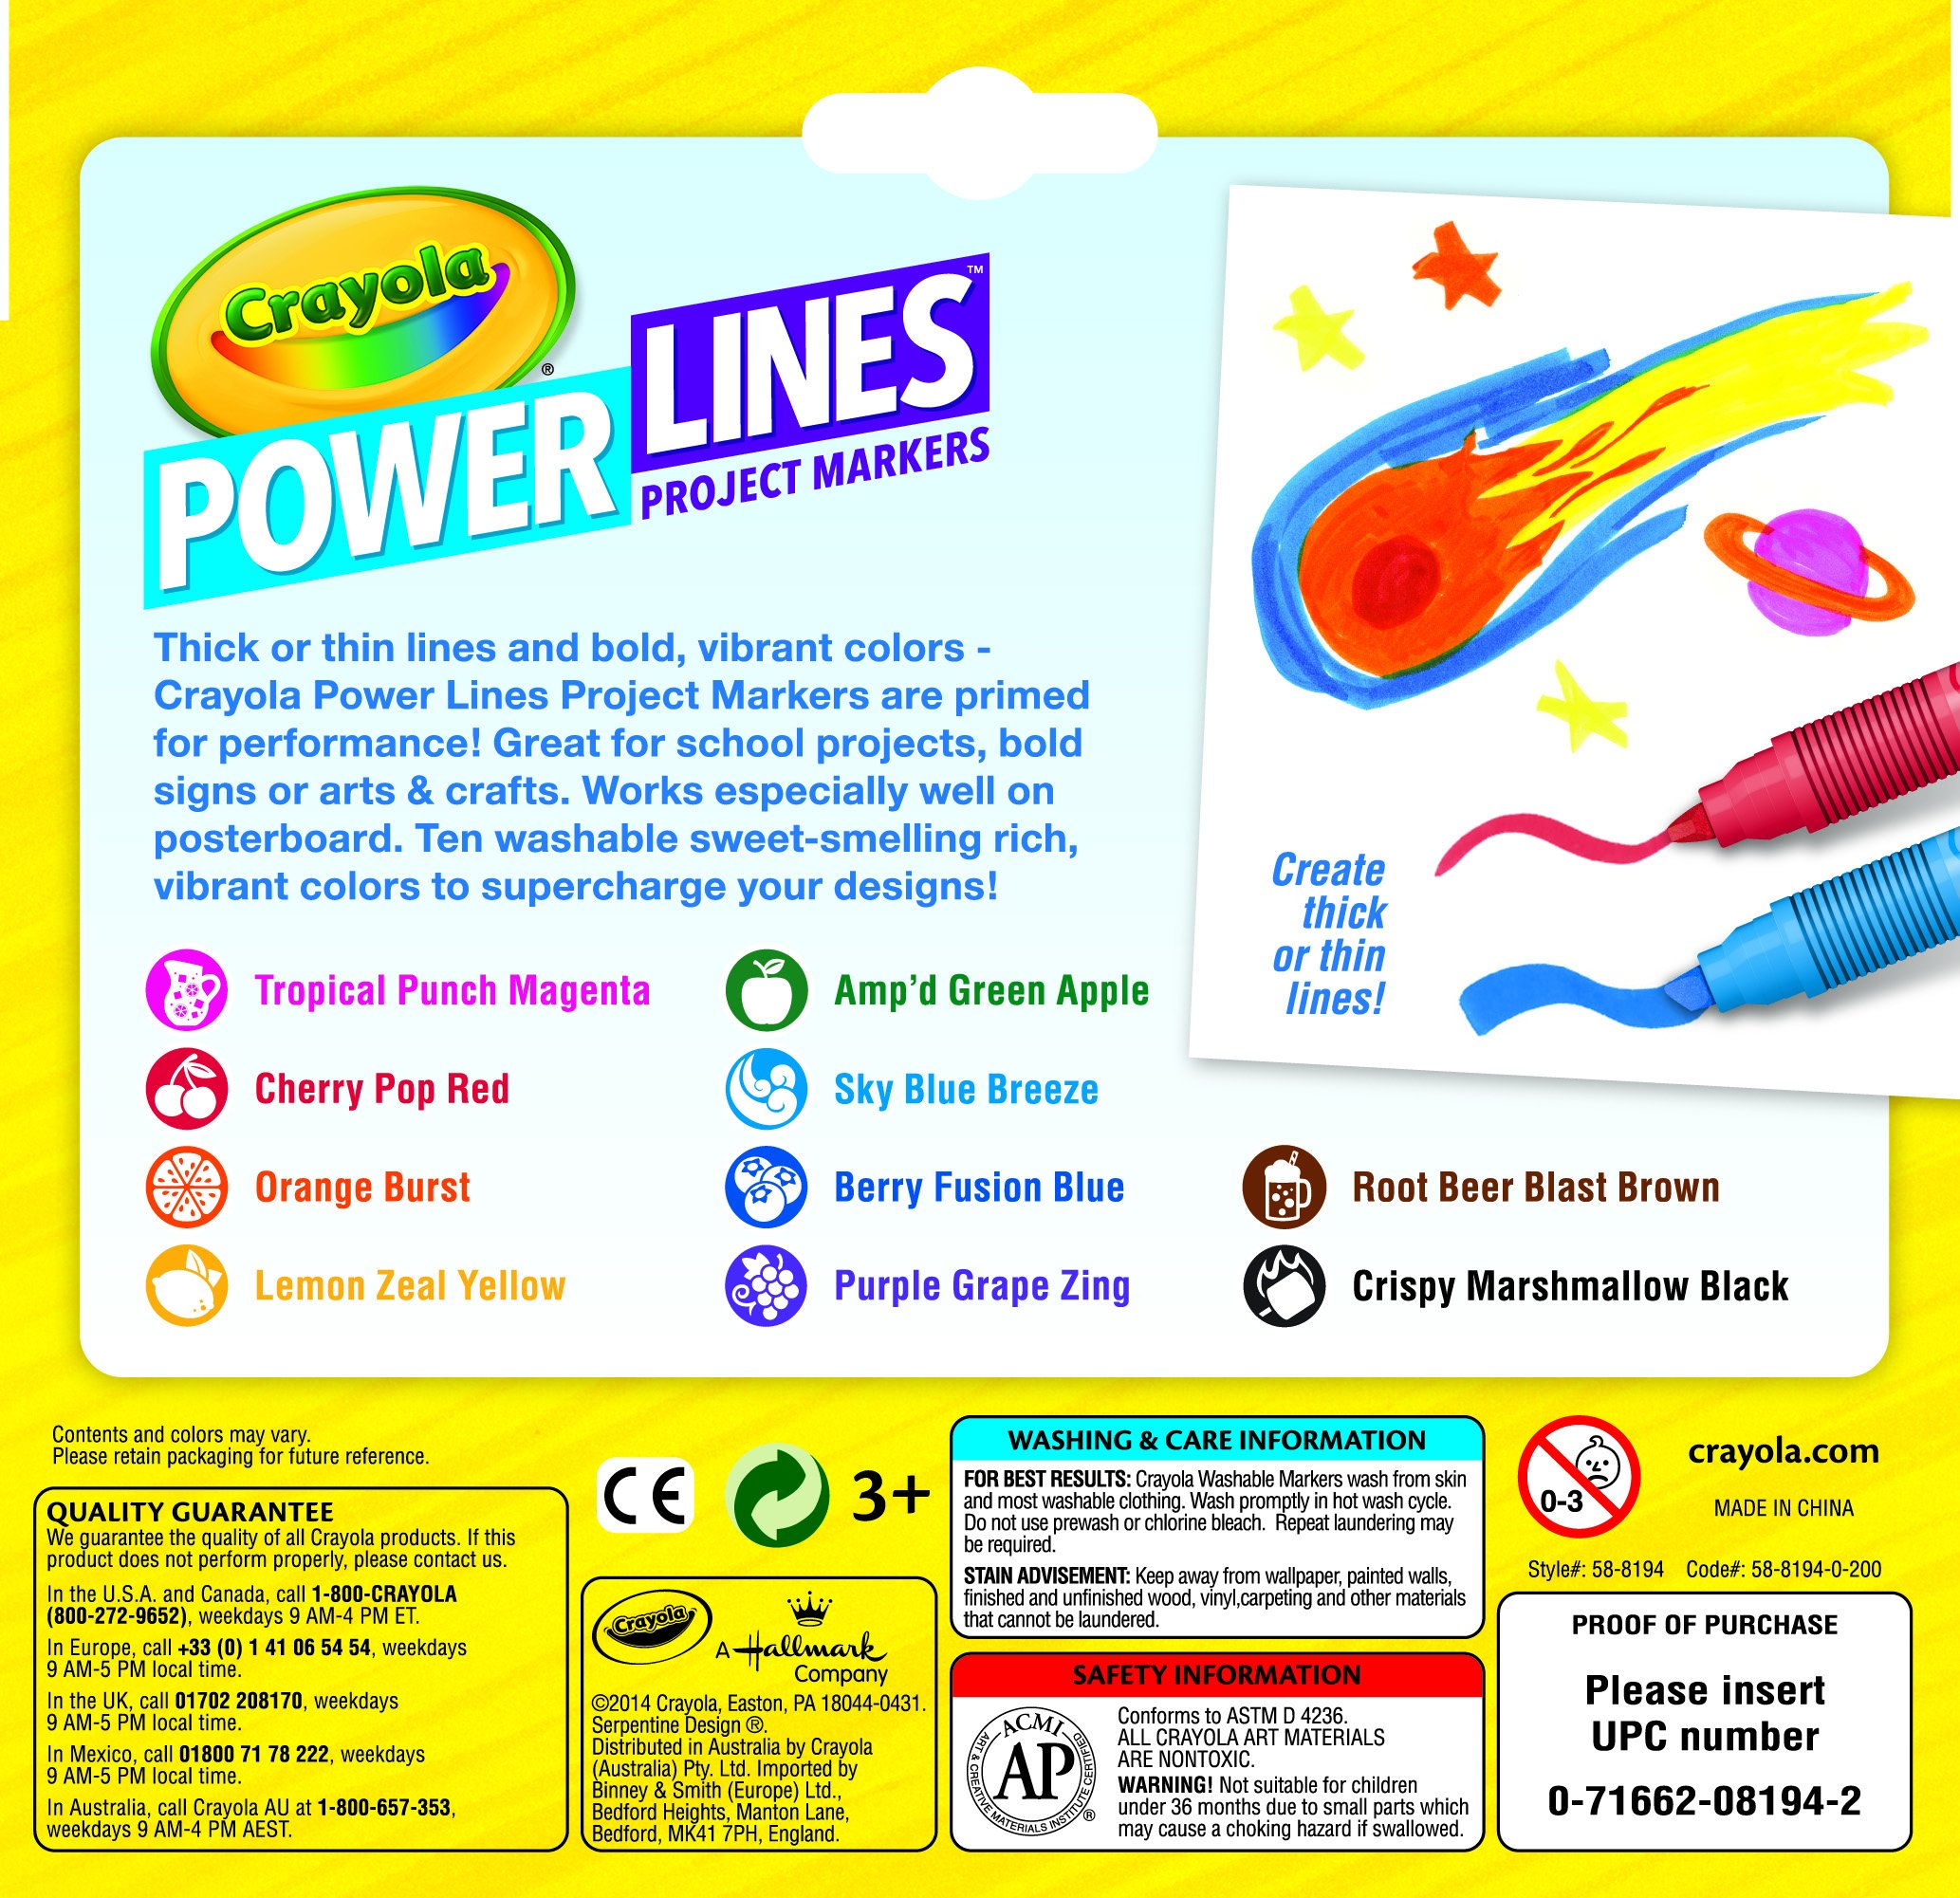 Crayola Power Lines 10-color Project Markers - Brown, Red, Blue, Violet, Black, Yellow, Magenta, Light Blue, Green, Orange Burst Ink - 10 / Pack (cyo-588194)